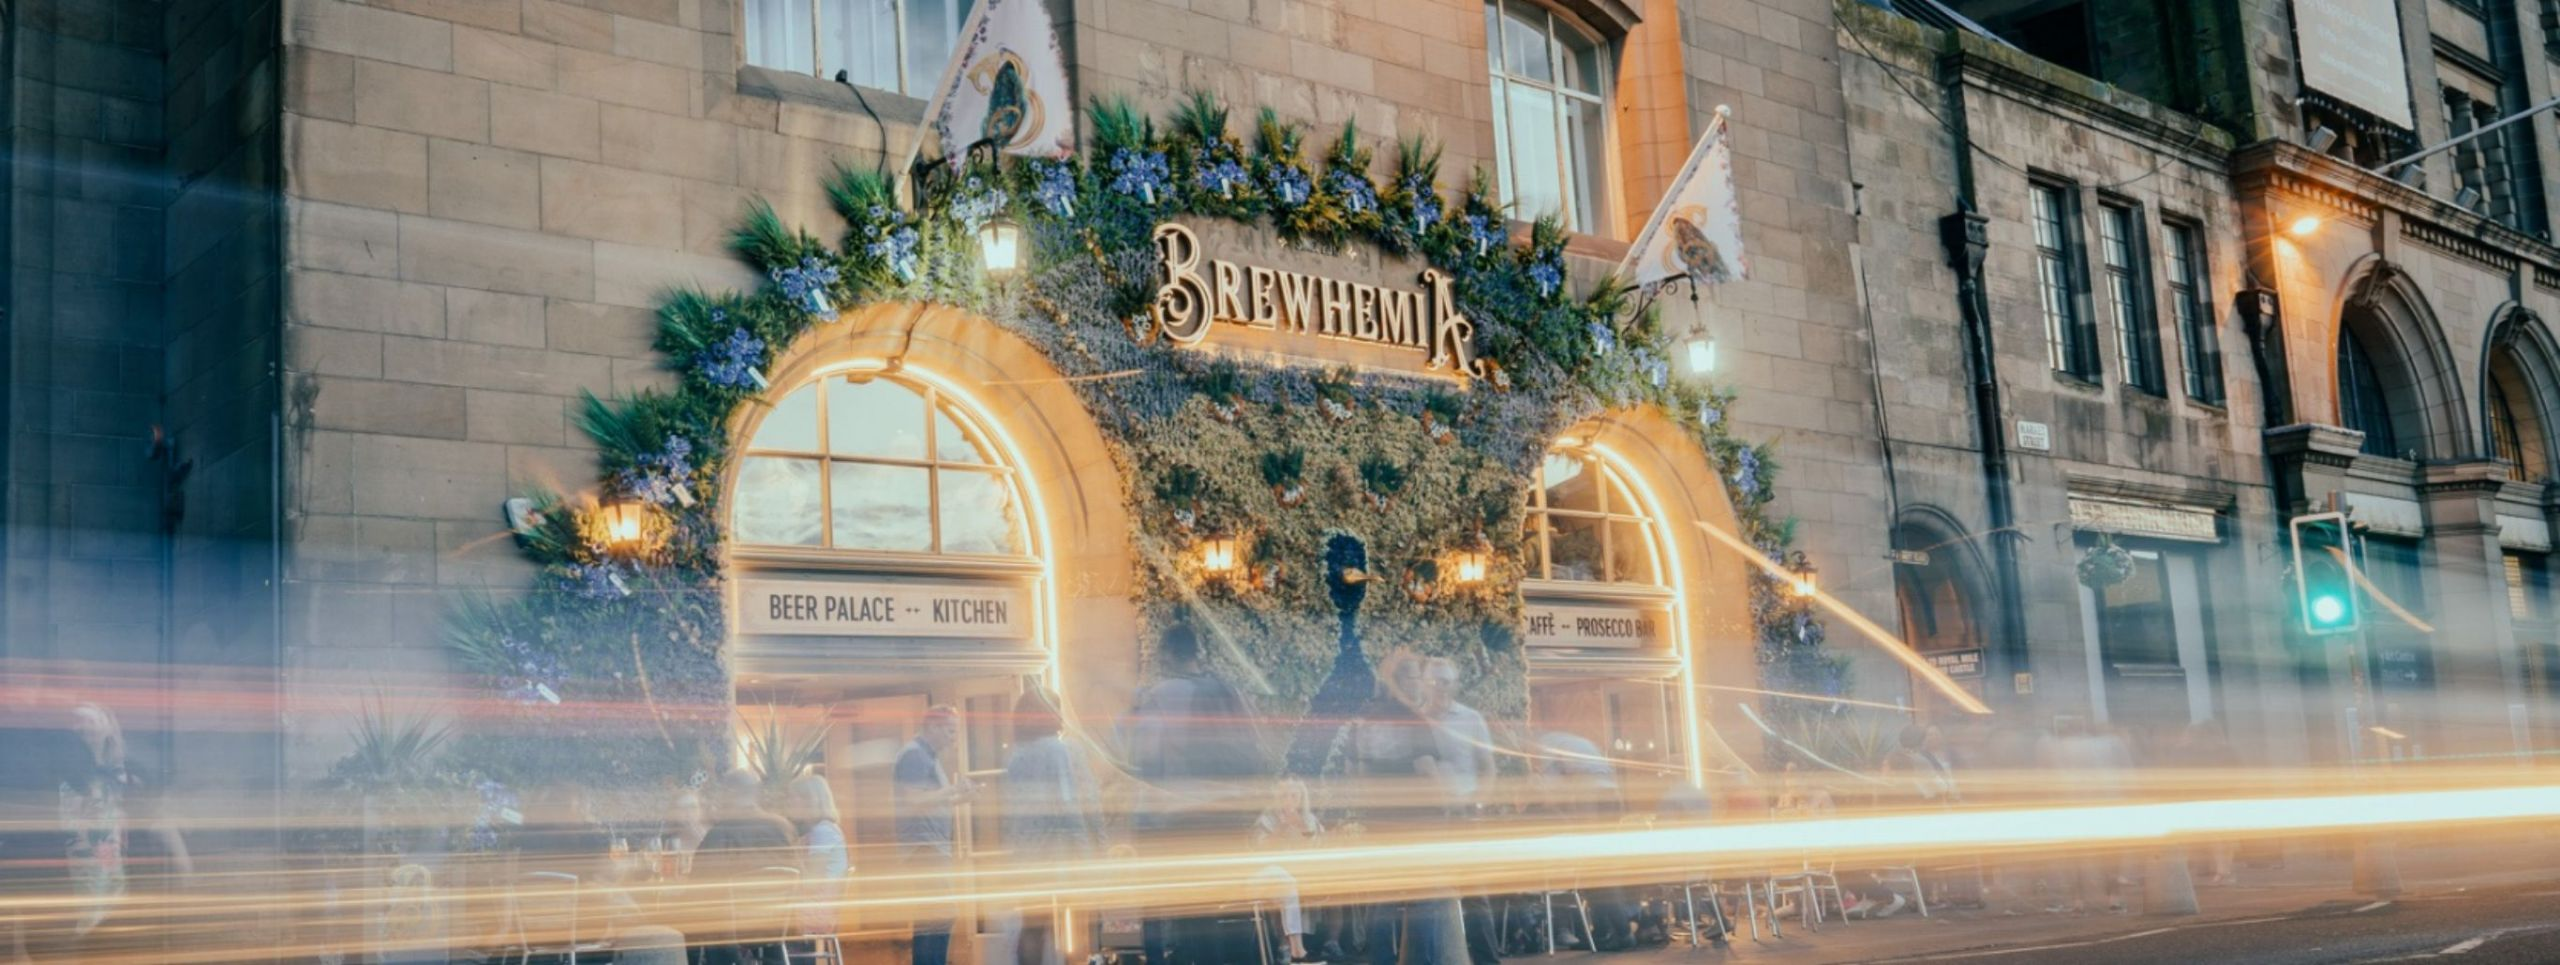 Exterior of Brewhemia Edinburgh on Market street, decorated with lights and the Peacock flowers